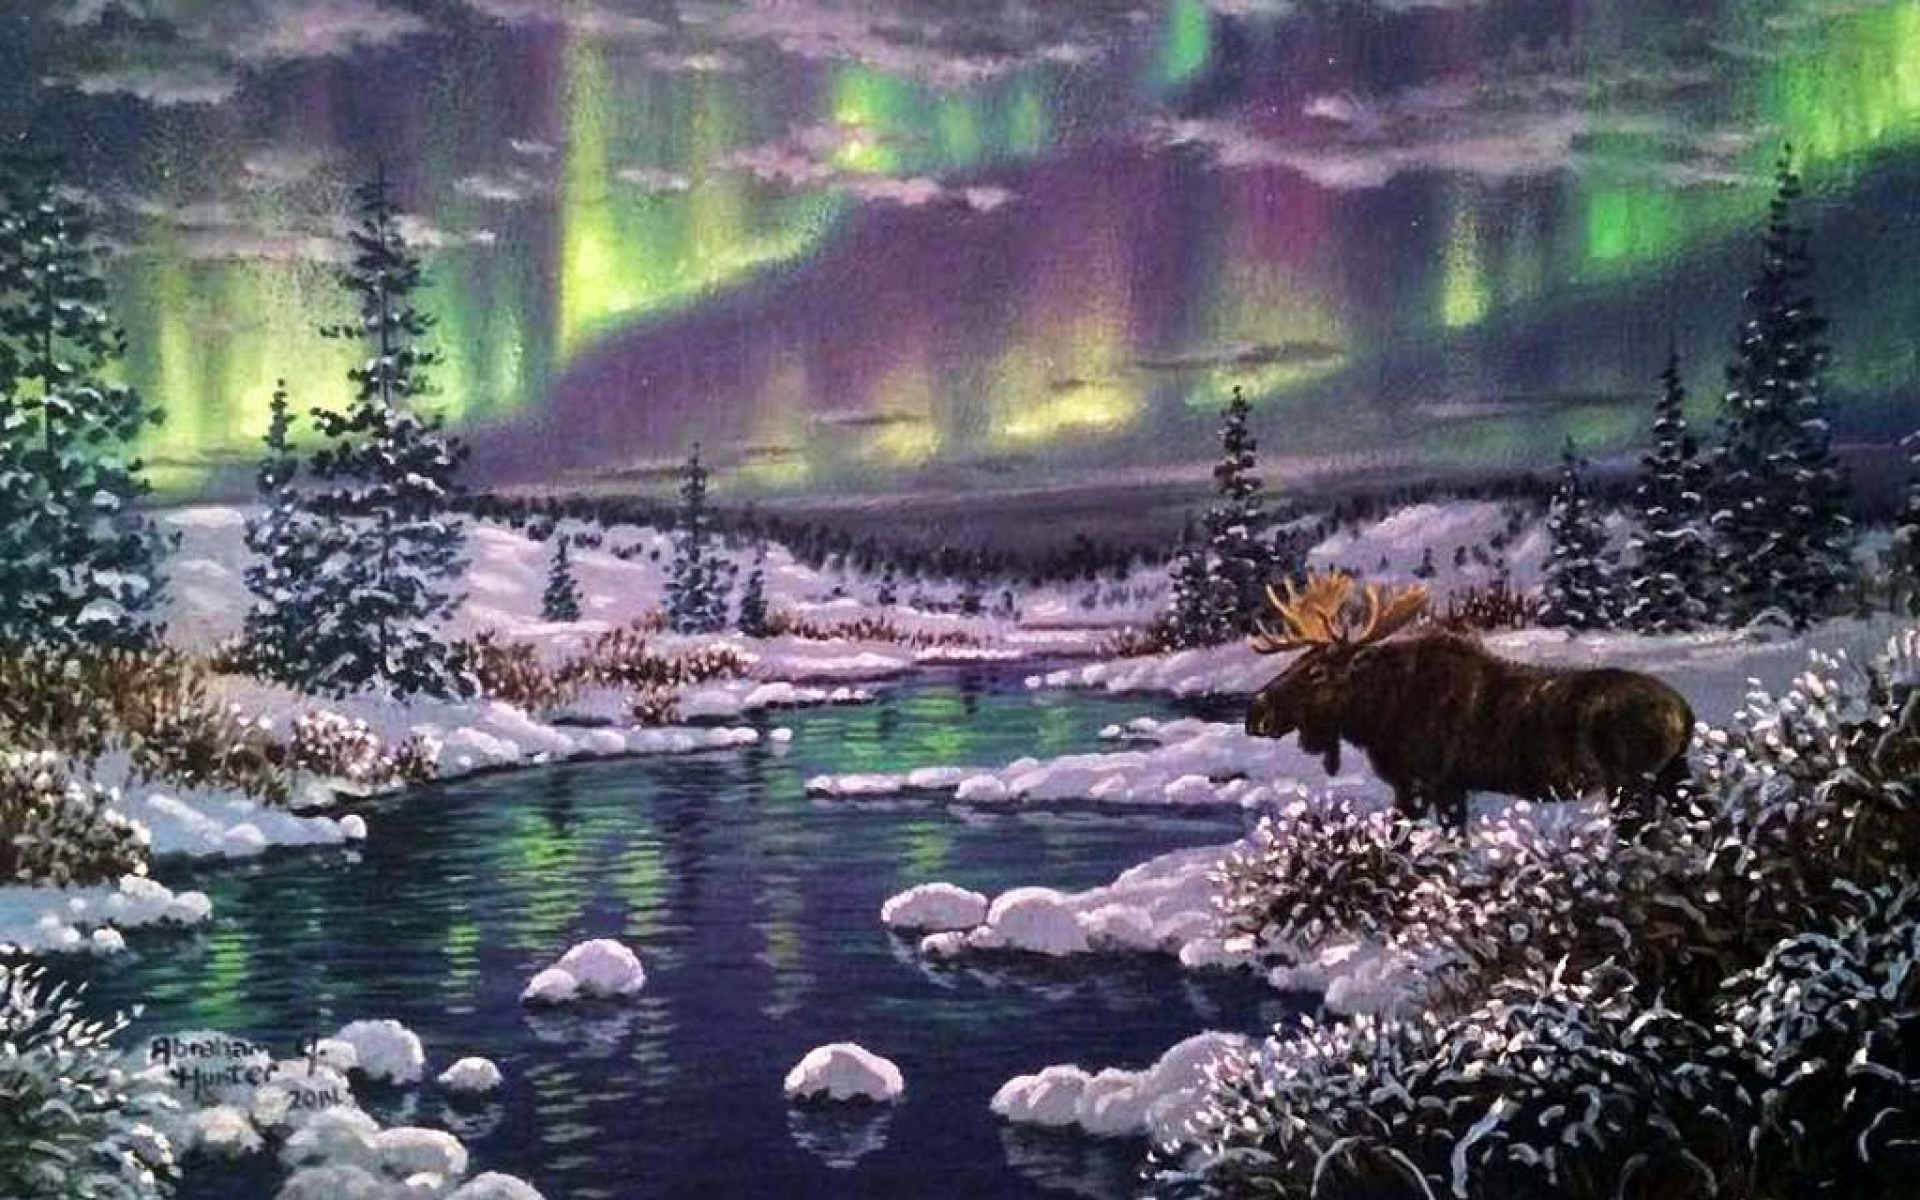 3d Fish Wallpaper Hd Aurora Forest Snow Moose River Wallpapers Aurora Forest